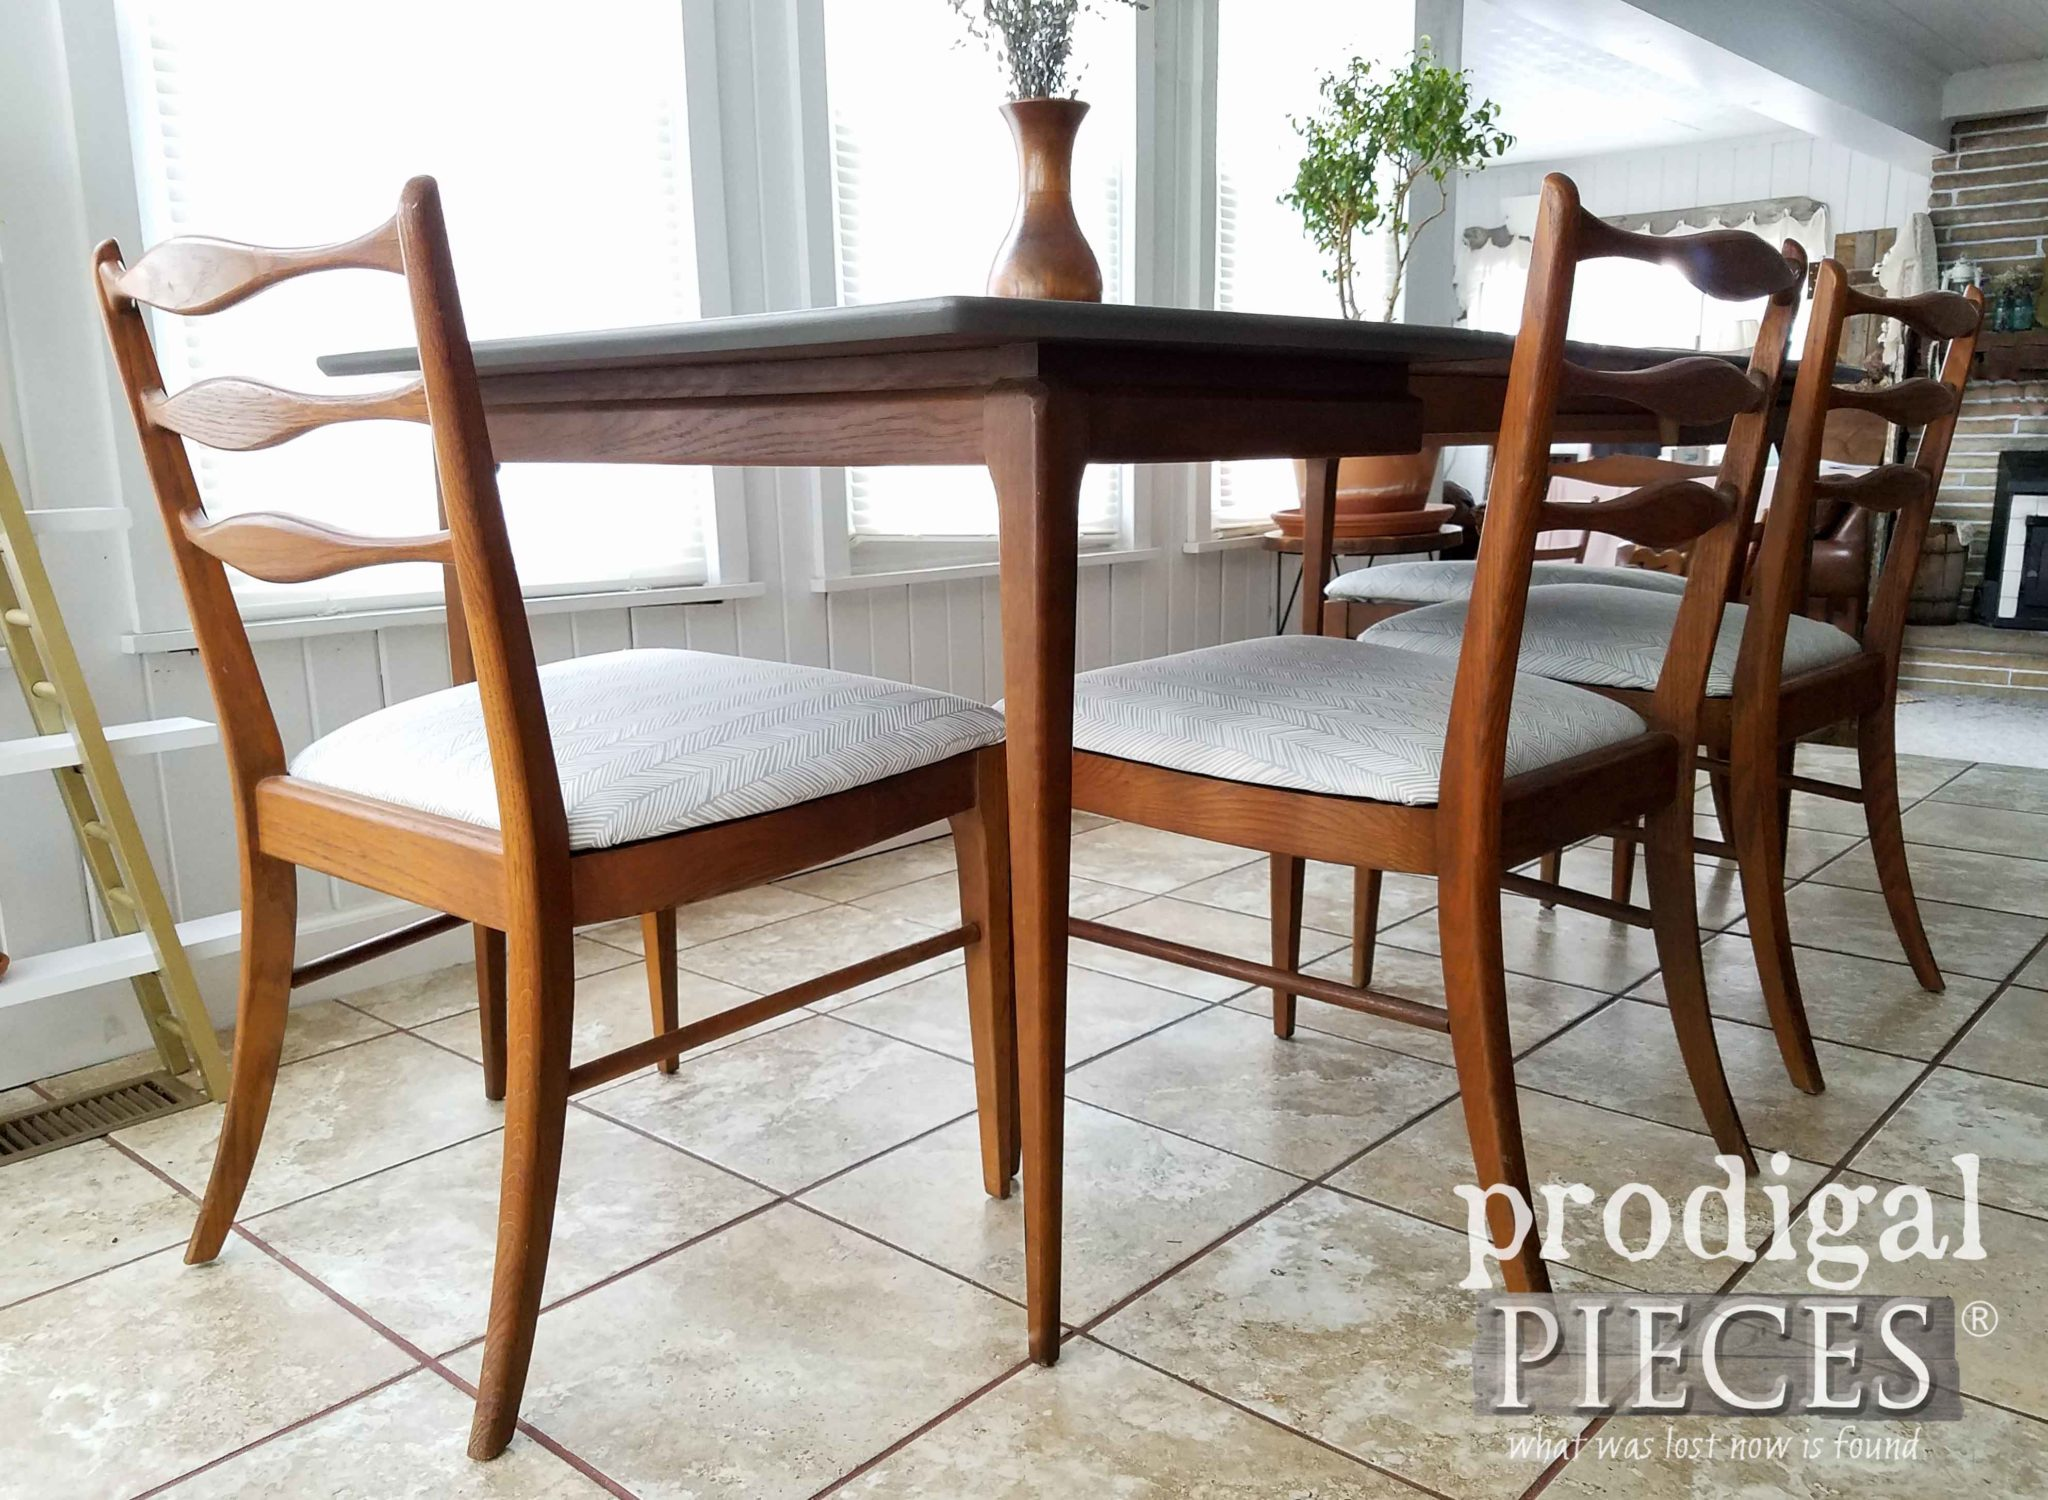 Retro Mid Century Modern Dining Table Set Updated by Larissa of Prodigal Pieces | prodigalpieces.com